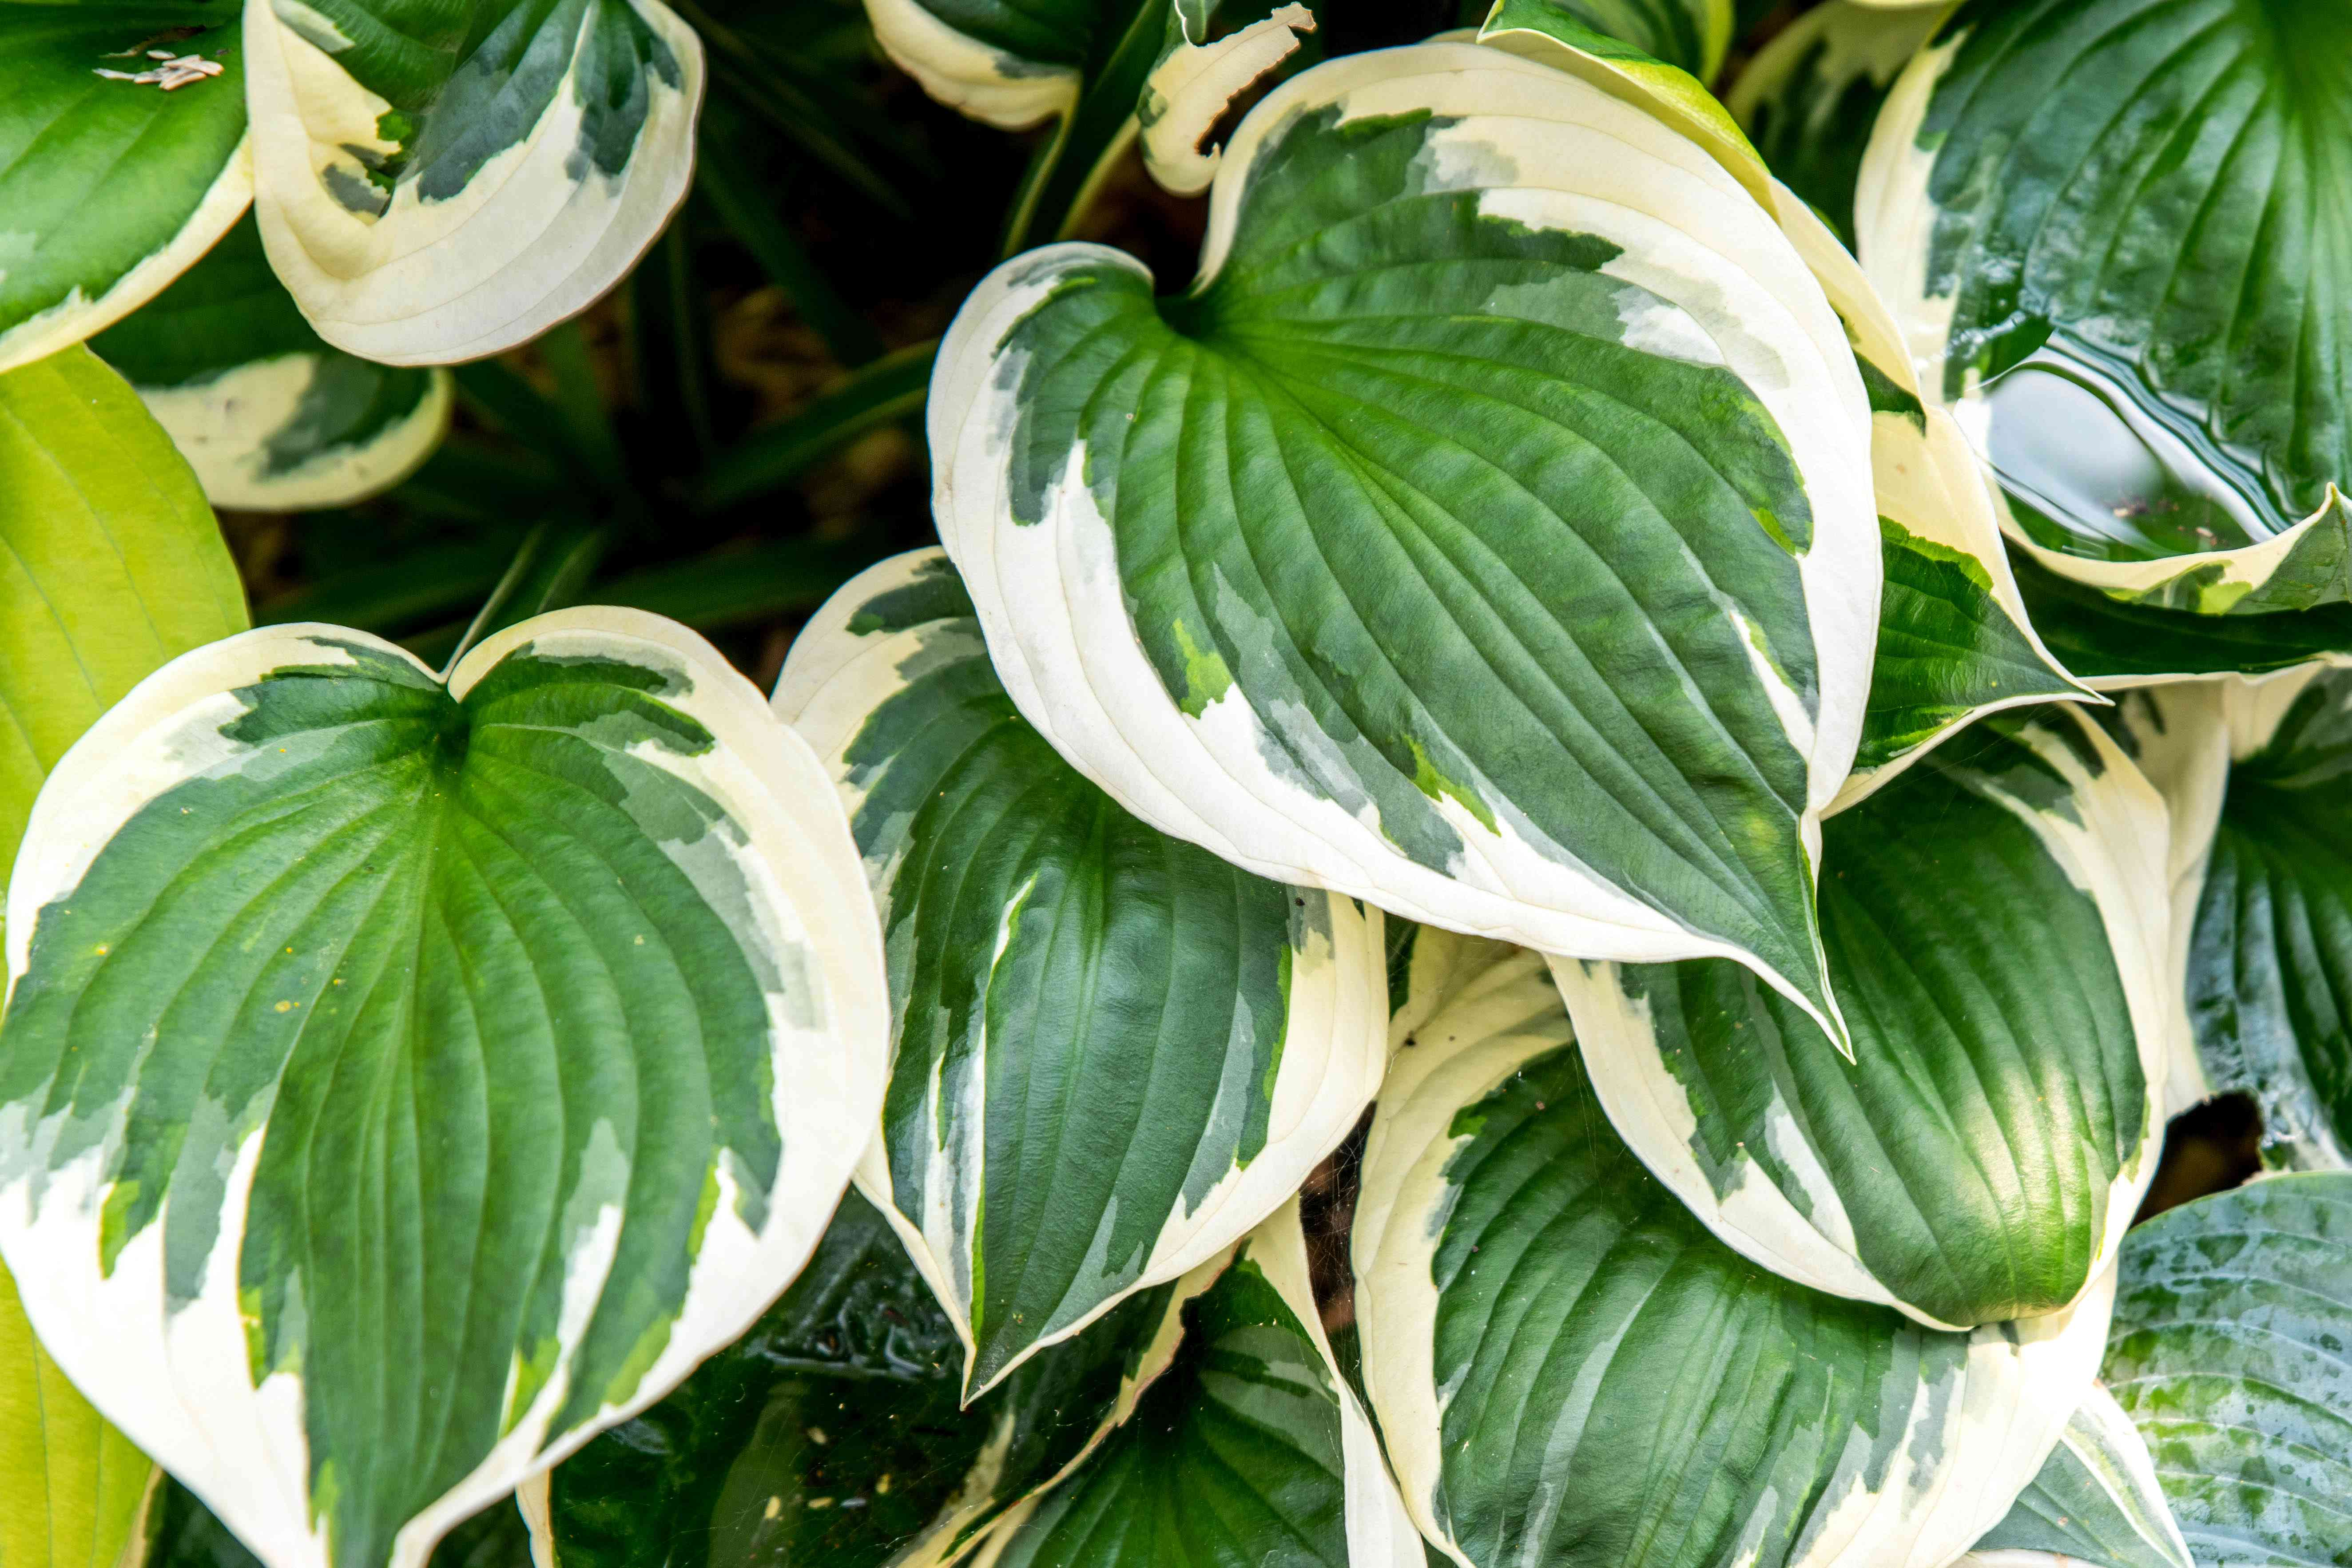 Patriot hosta plant with large rounded leaves with white edges closeup